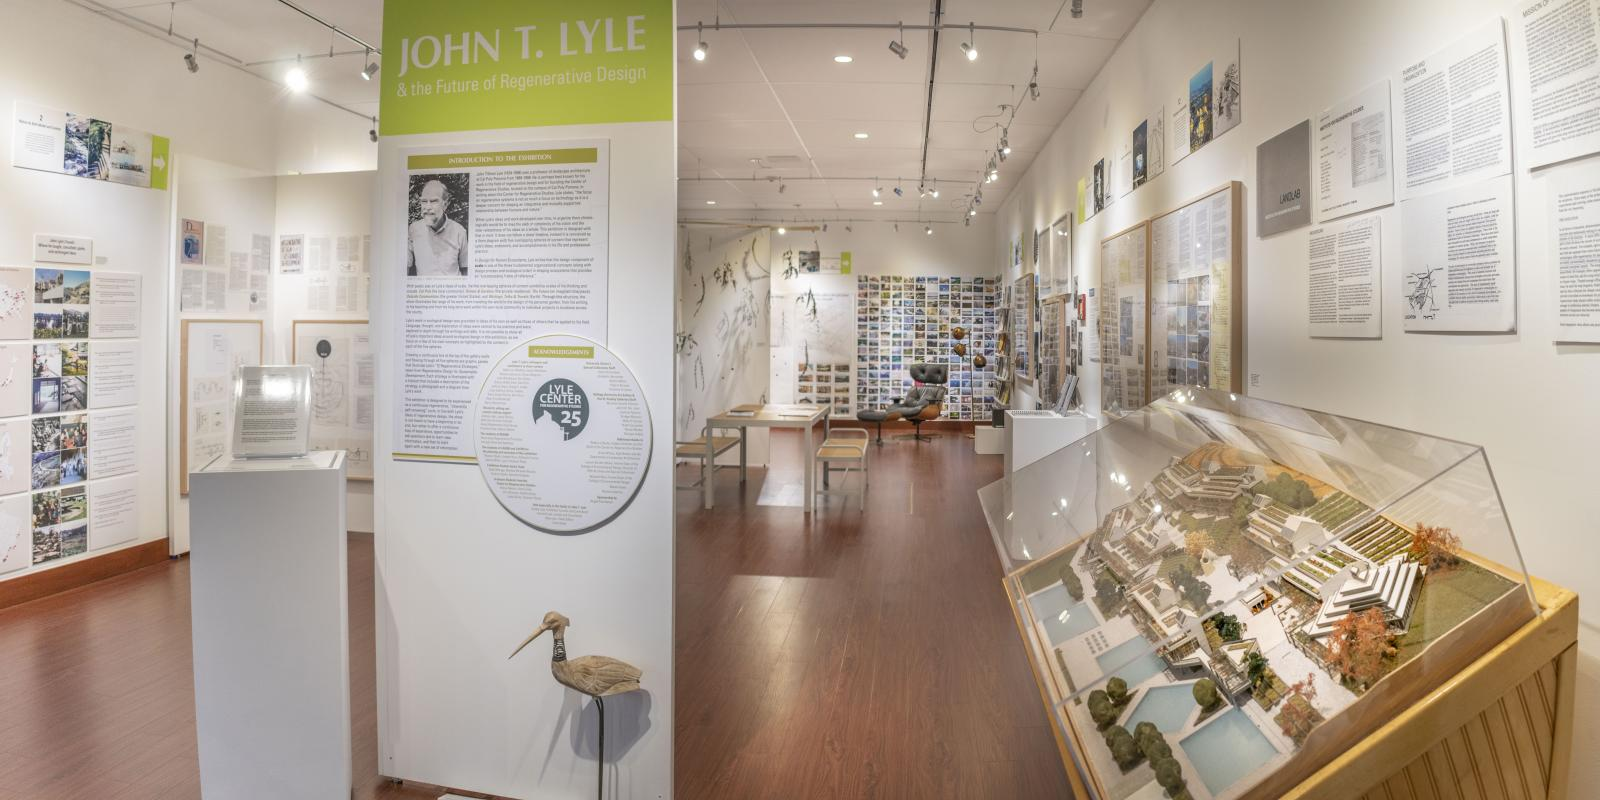 "Installation View, Gallery entrance, ""John T. Lyle and the Future of Regenerative Design"" Exhibition, Oct. 17, 2019 to Dec. 8, 2019, Curator: Cybele Lyle, Don B. Huntley Gallery, Cal Poly Pomona."